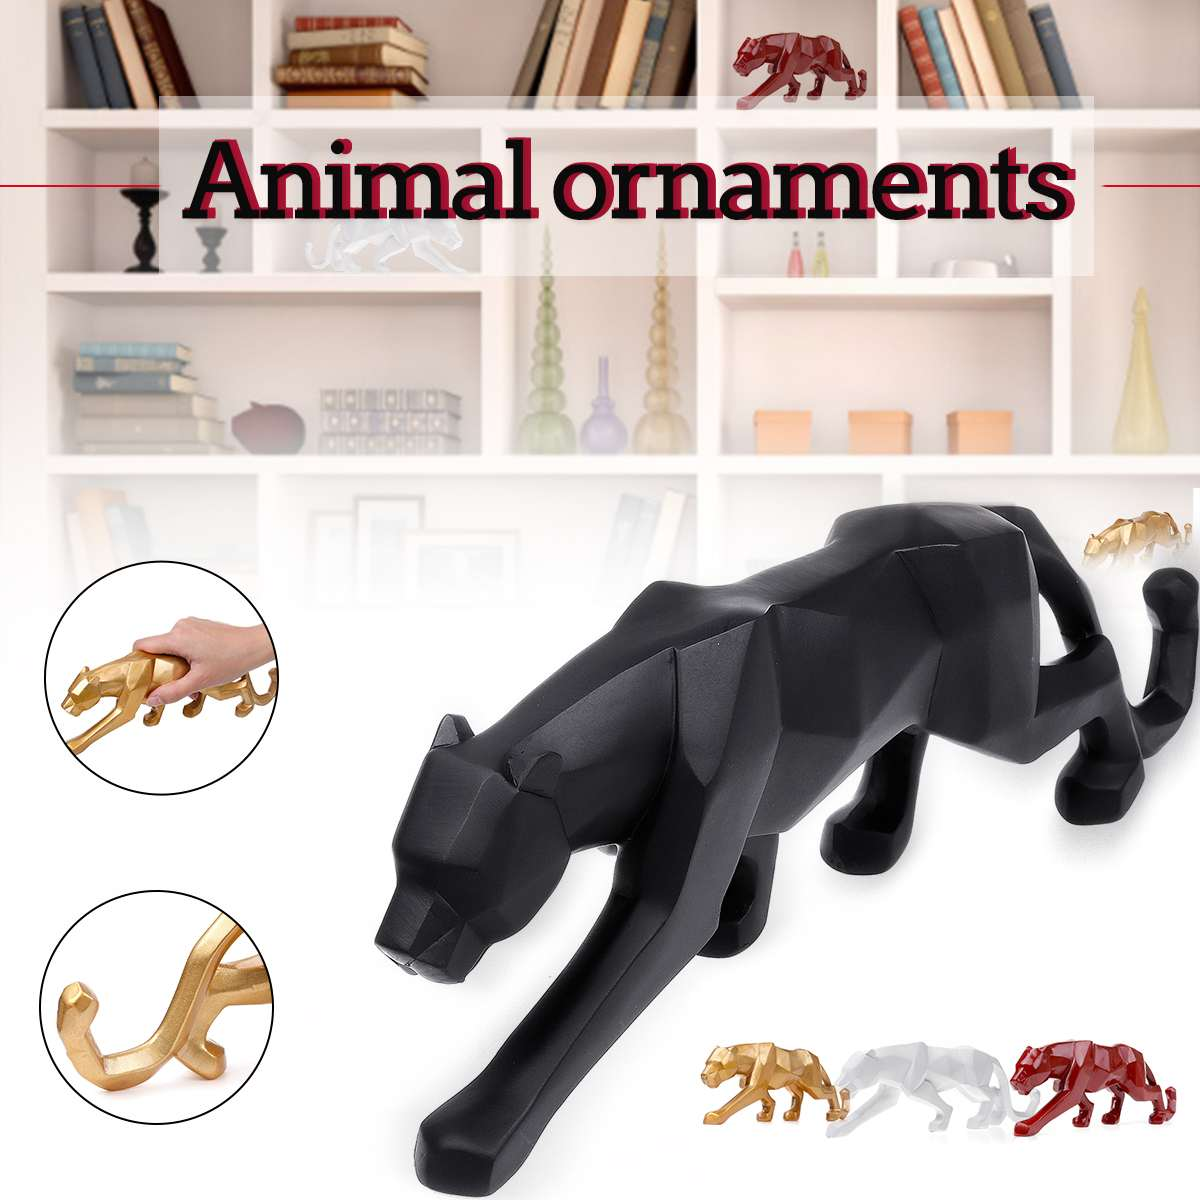 26*5*8cm Modern Red Gold White Black Panther Resin Sculpture Geometric Resin Leopard Statue Crafts Wildlife Art Decor Gift26*5*8cm Modern Red Gold White Black Panther Resin Sculpture Geometric Resin Leopard Statue Crafts Wildlife Art Decor Gift